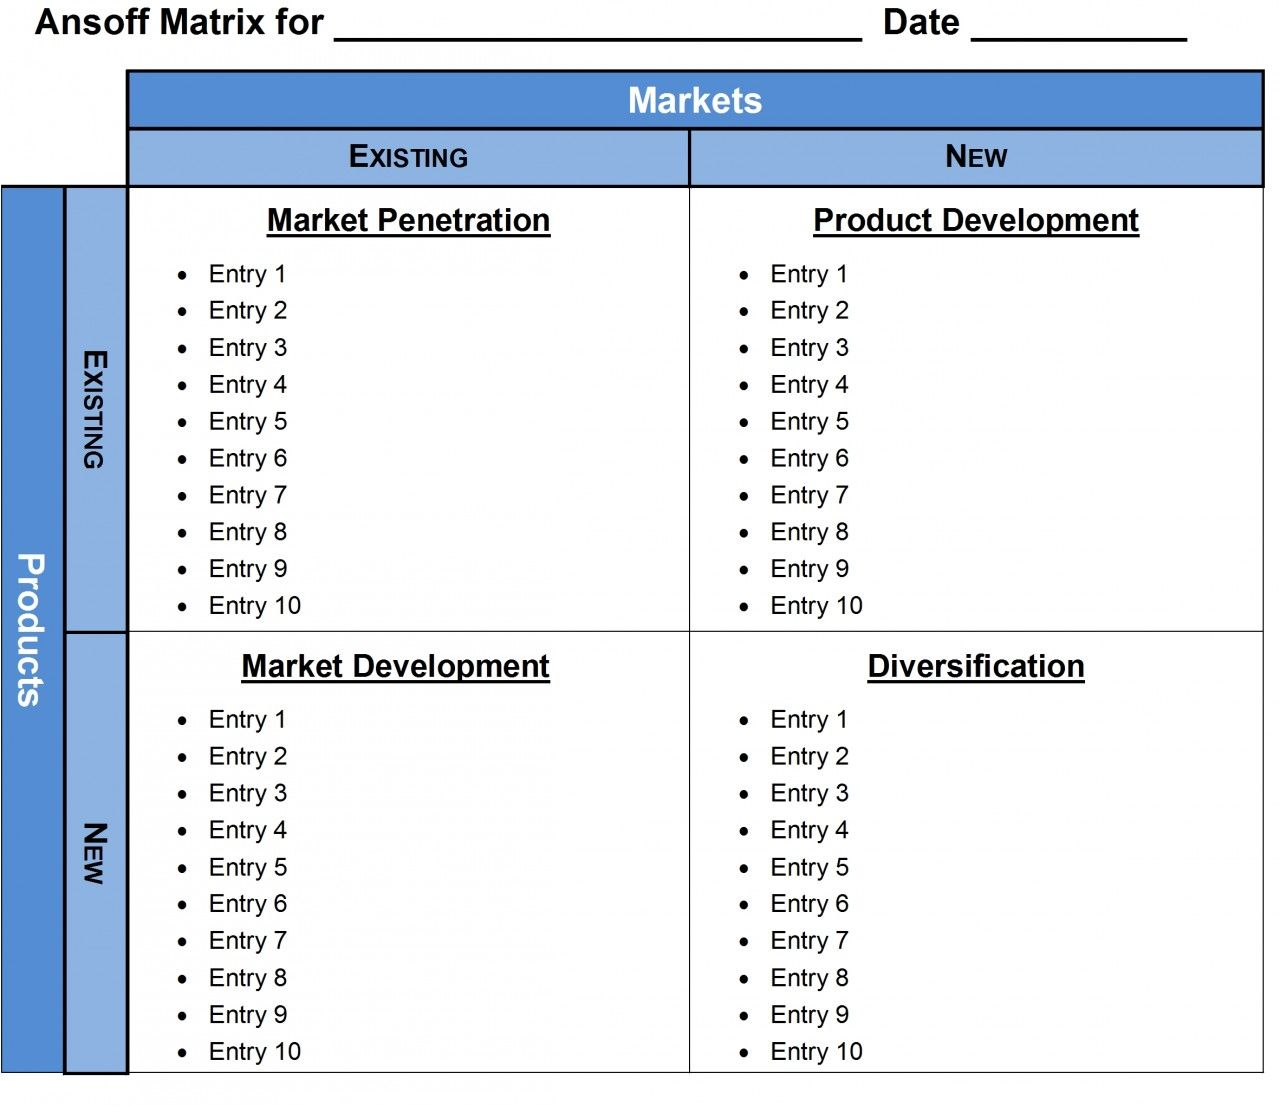 Ansoff Matrix Template Word     Ansoff Matrix Tool